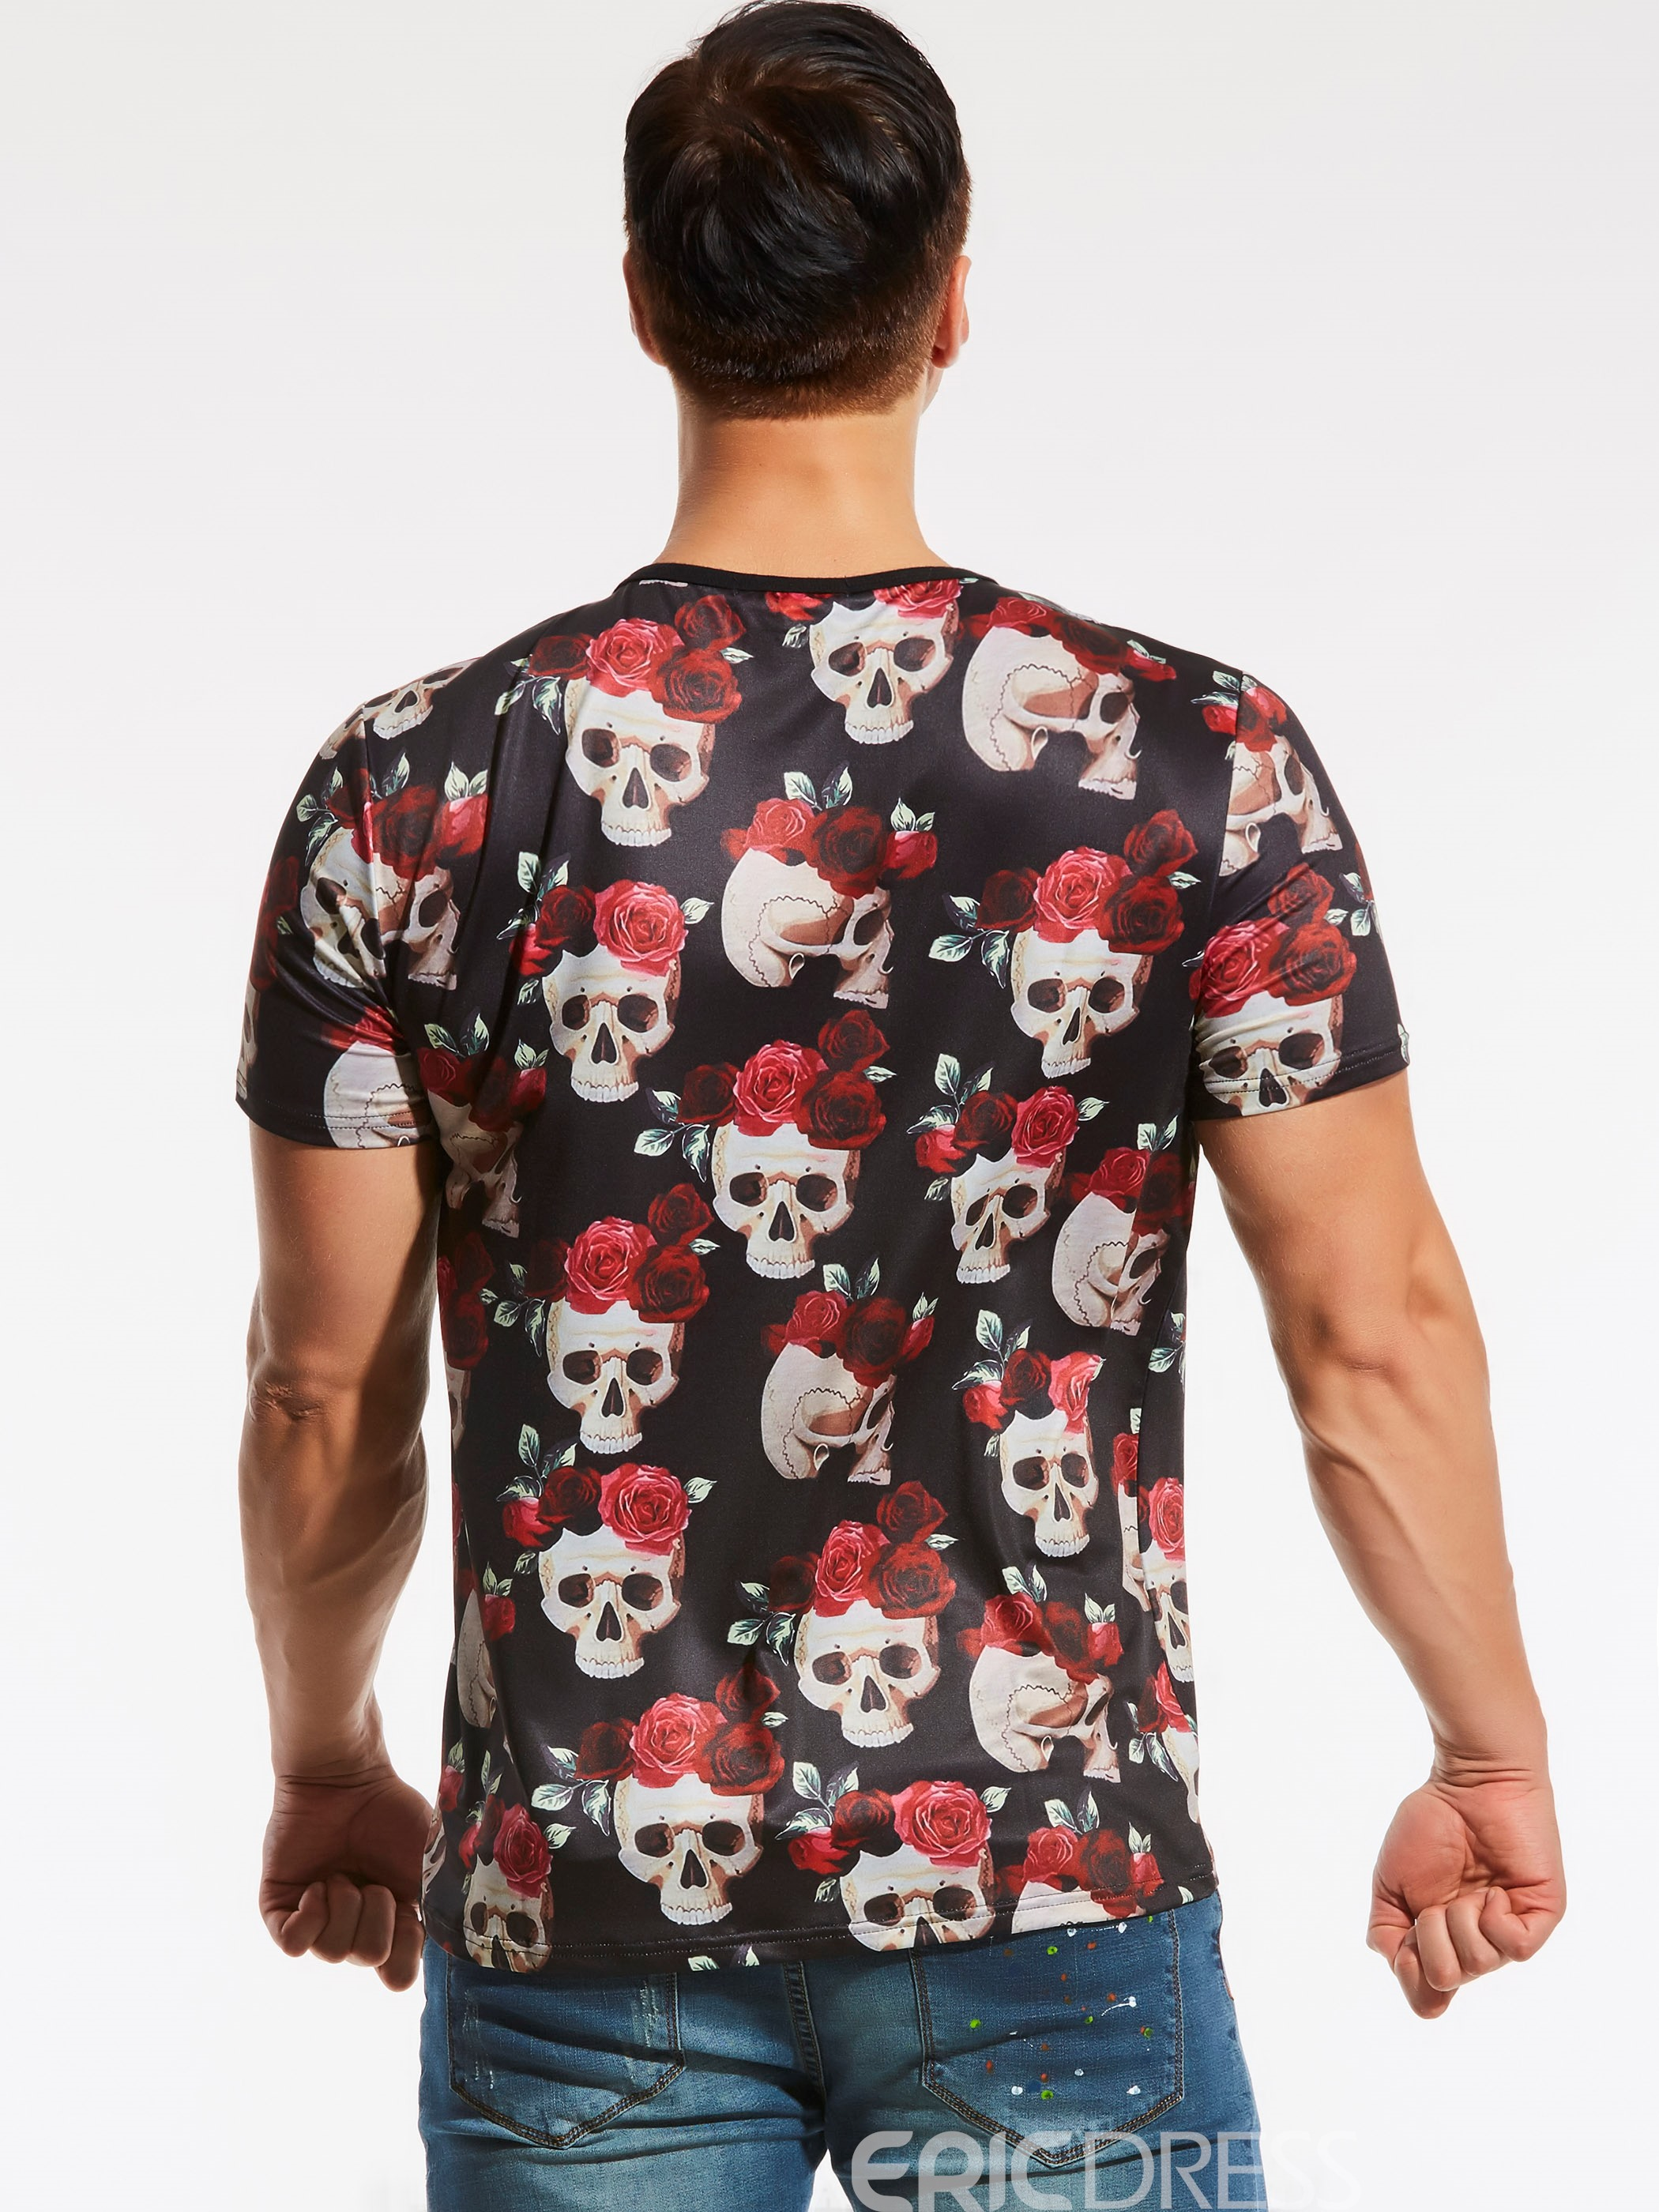 Ericdress Skull Print Unique Short Sleeve Plus Size Men's T-Shirt